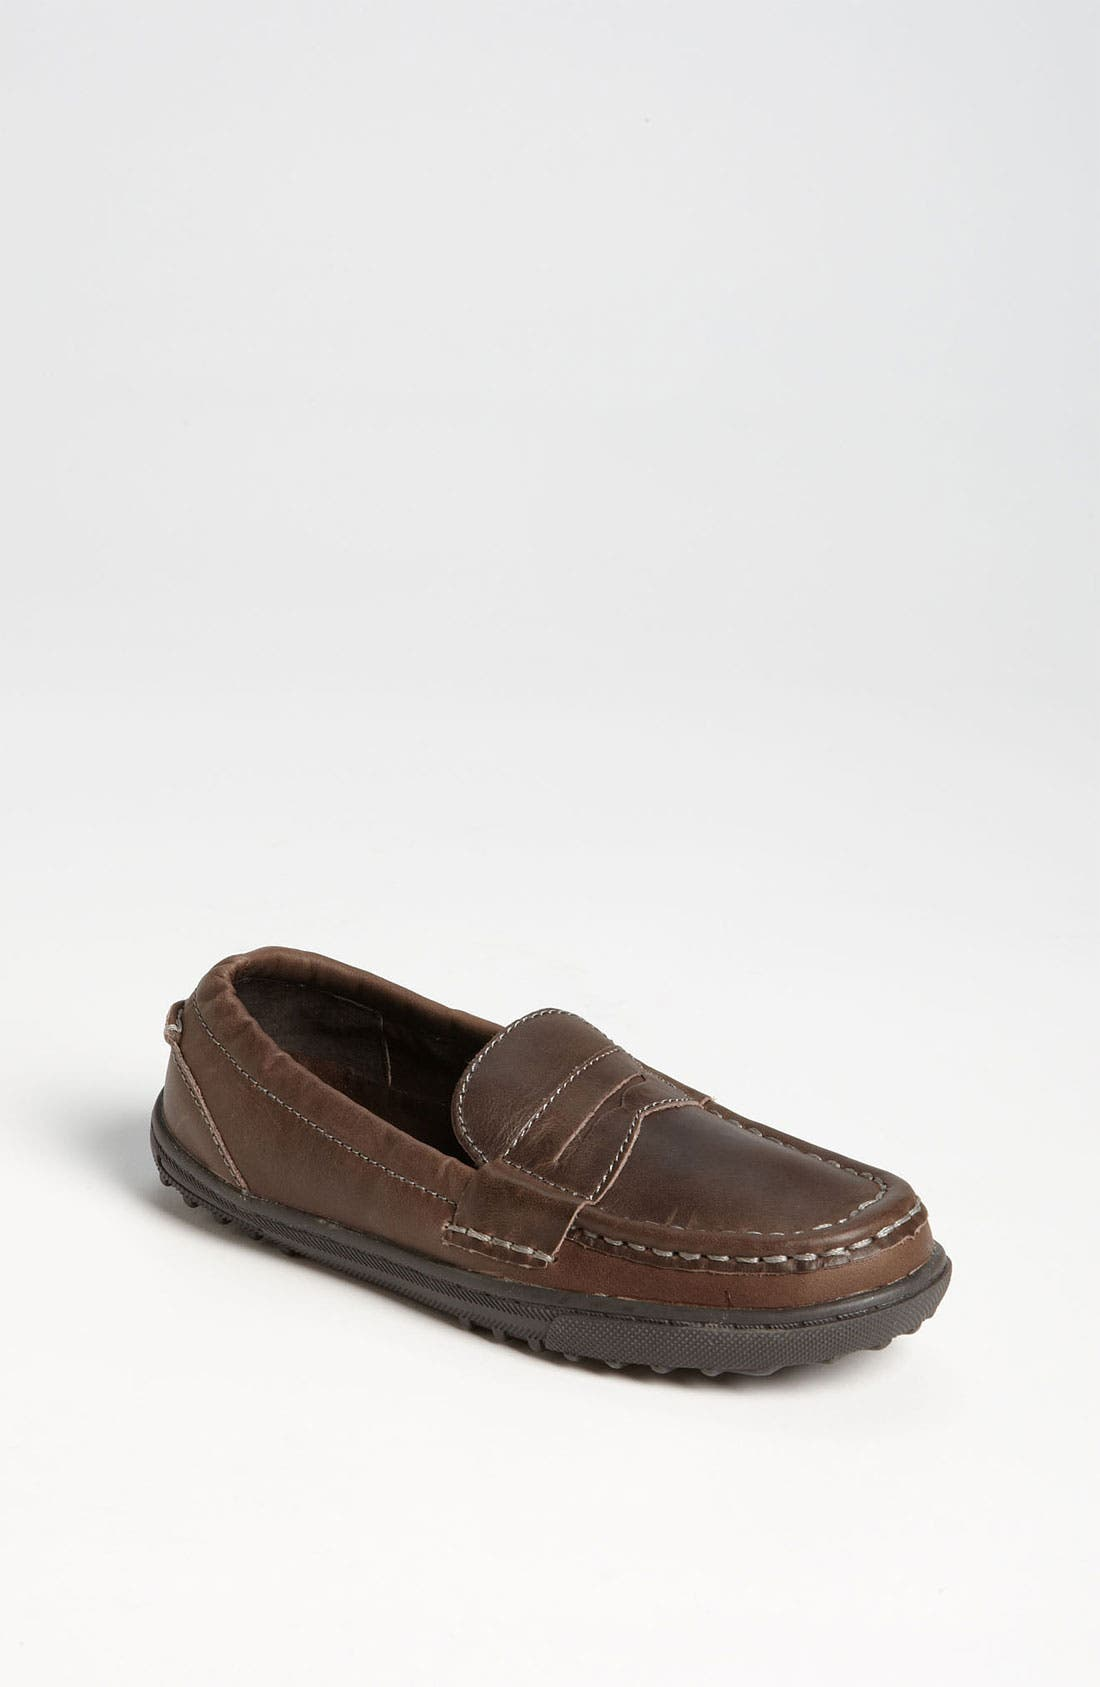 Main Image - Cole Haan 'Air Sail' Loafer (Toddler, Little Kid & Big Kid)